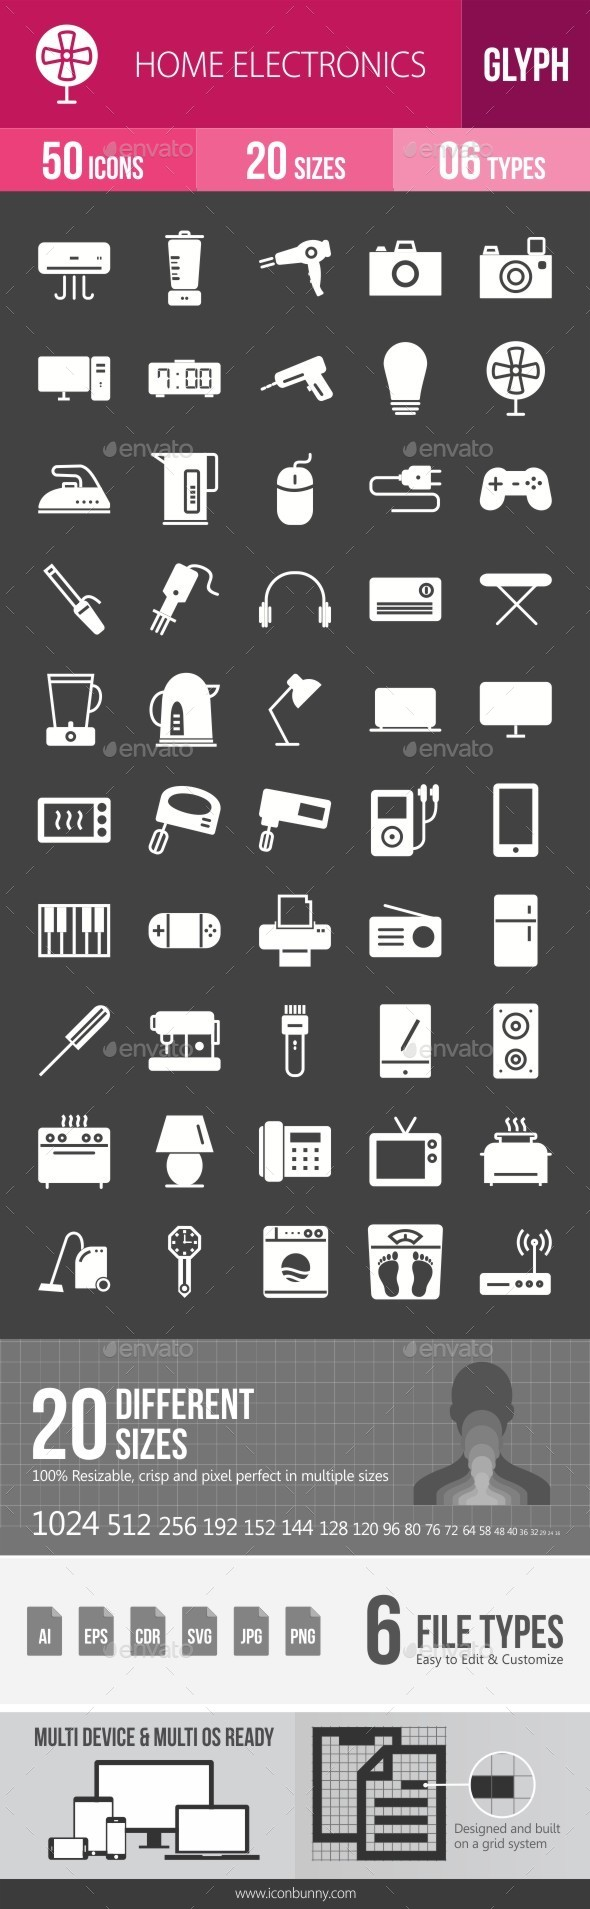 Home Electronics Glyph Inverted Icons - Icons